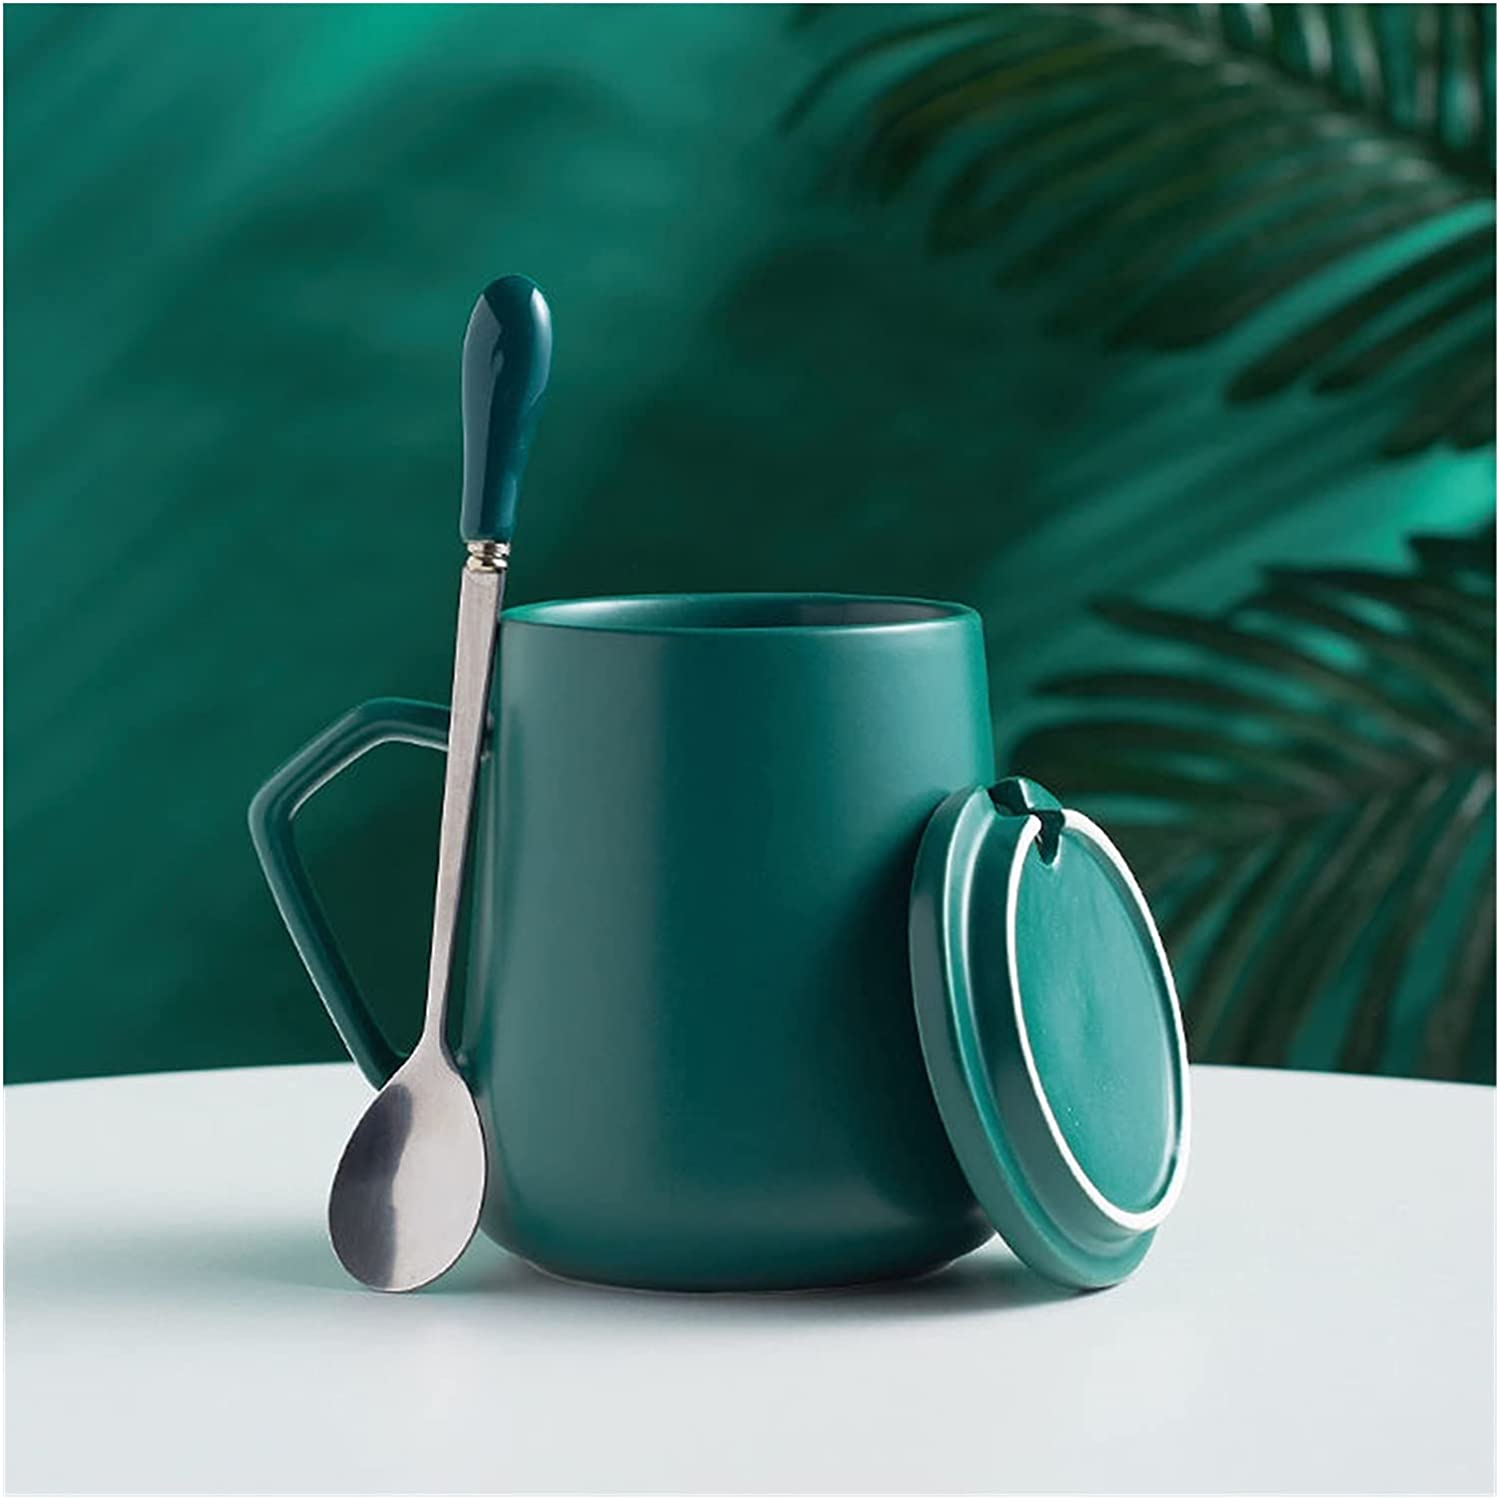 Water cup 2021new shipping free shipping Dealing full price reduction Mug Square Hand Holding Milk Coffee Cu Cup Tea